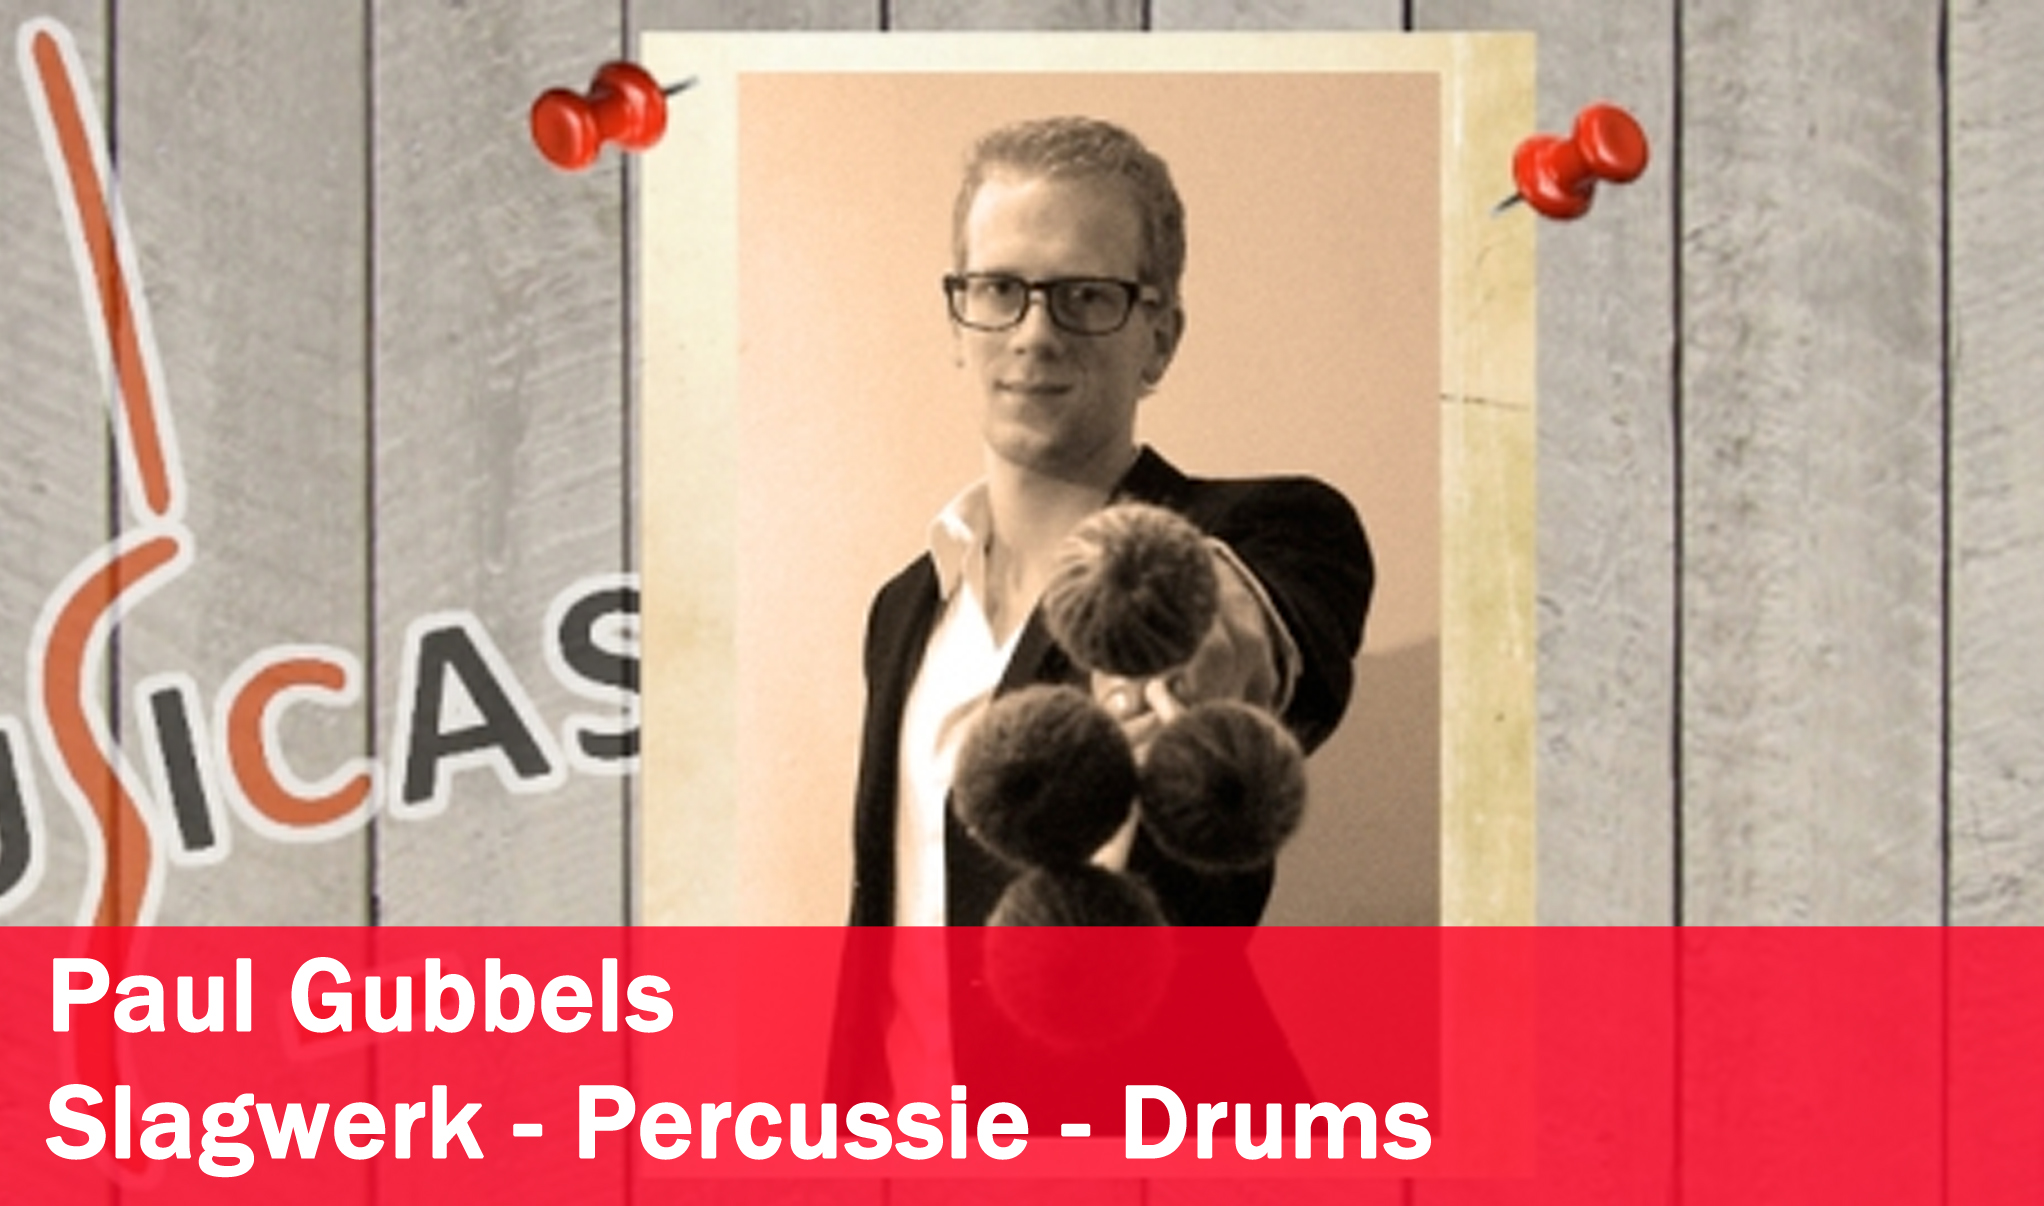 Paul Gubbels <br>Slagwerk - Percussie - Drums